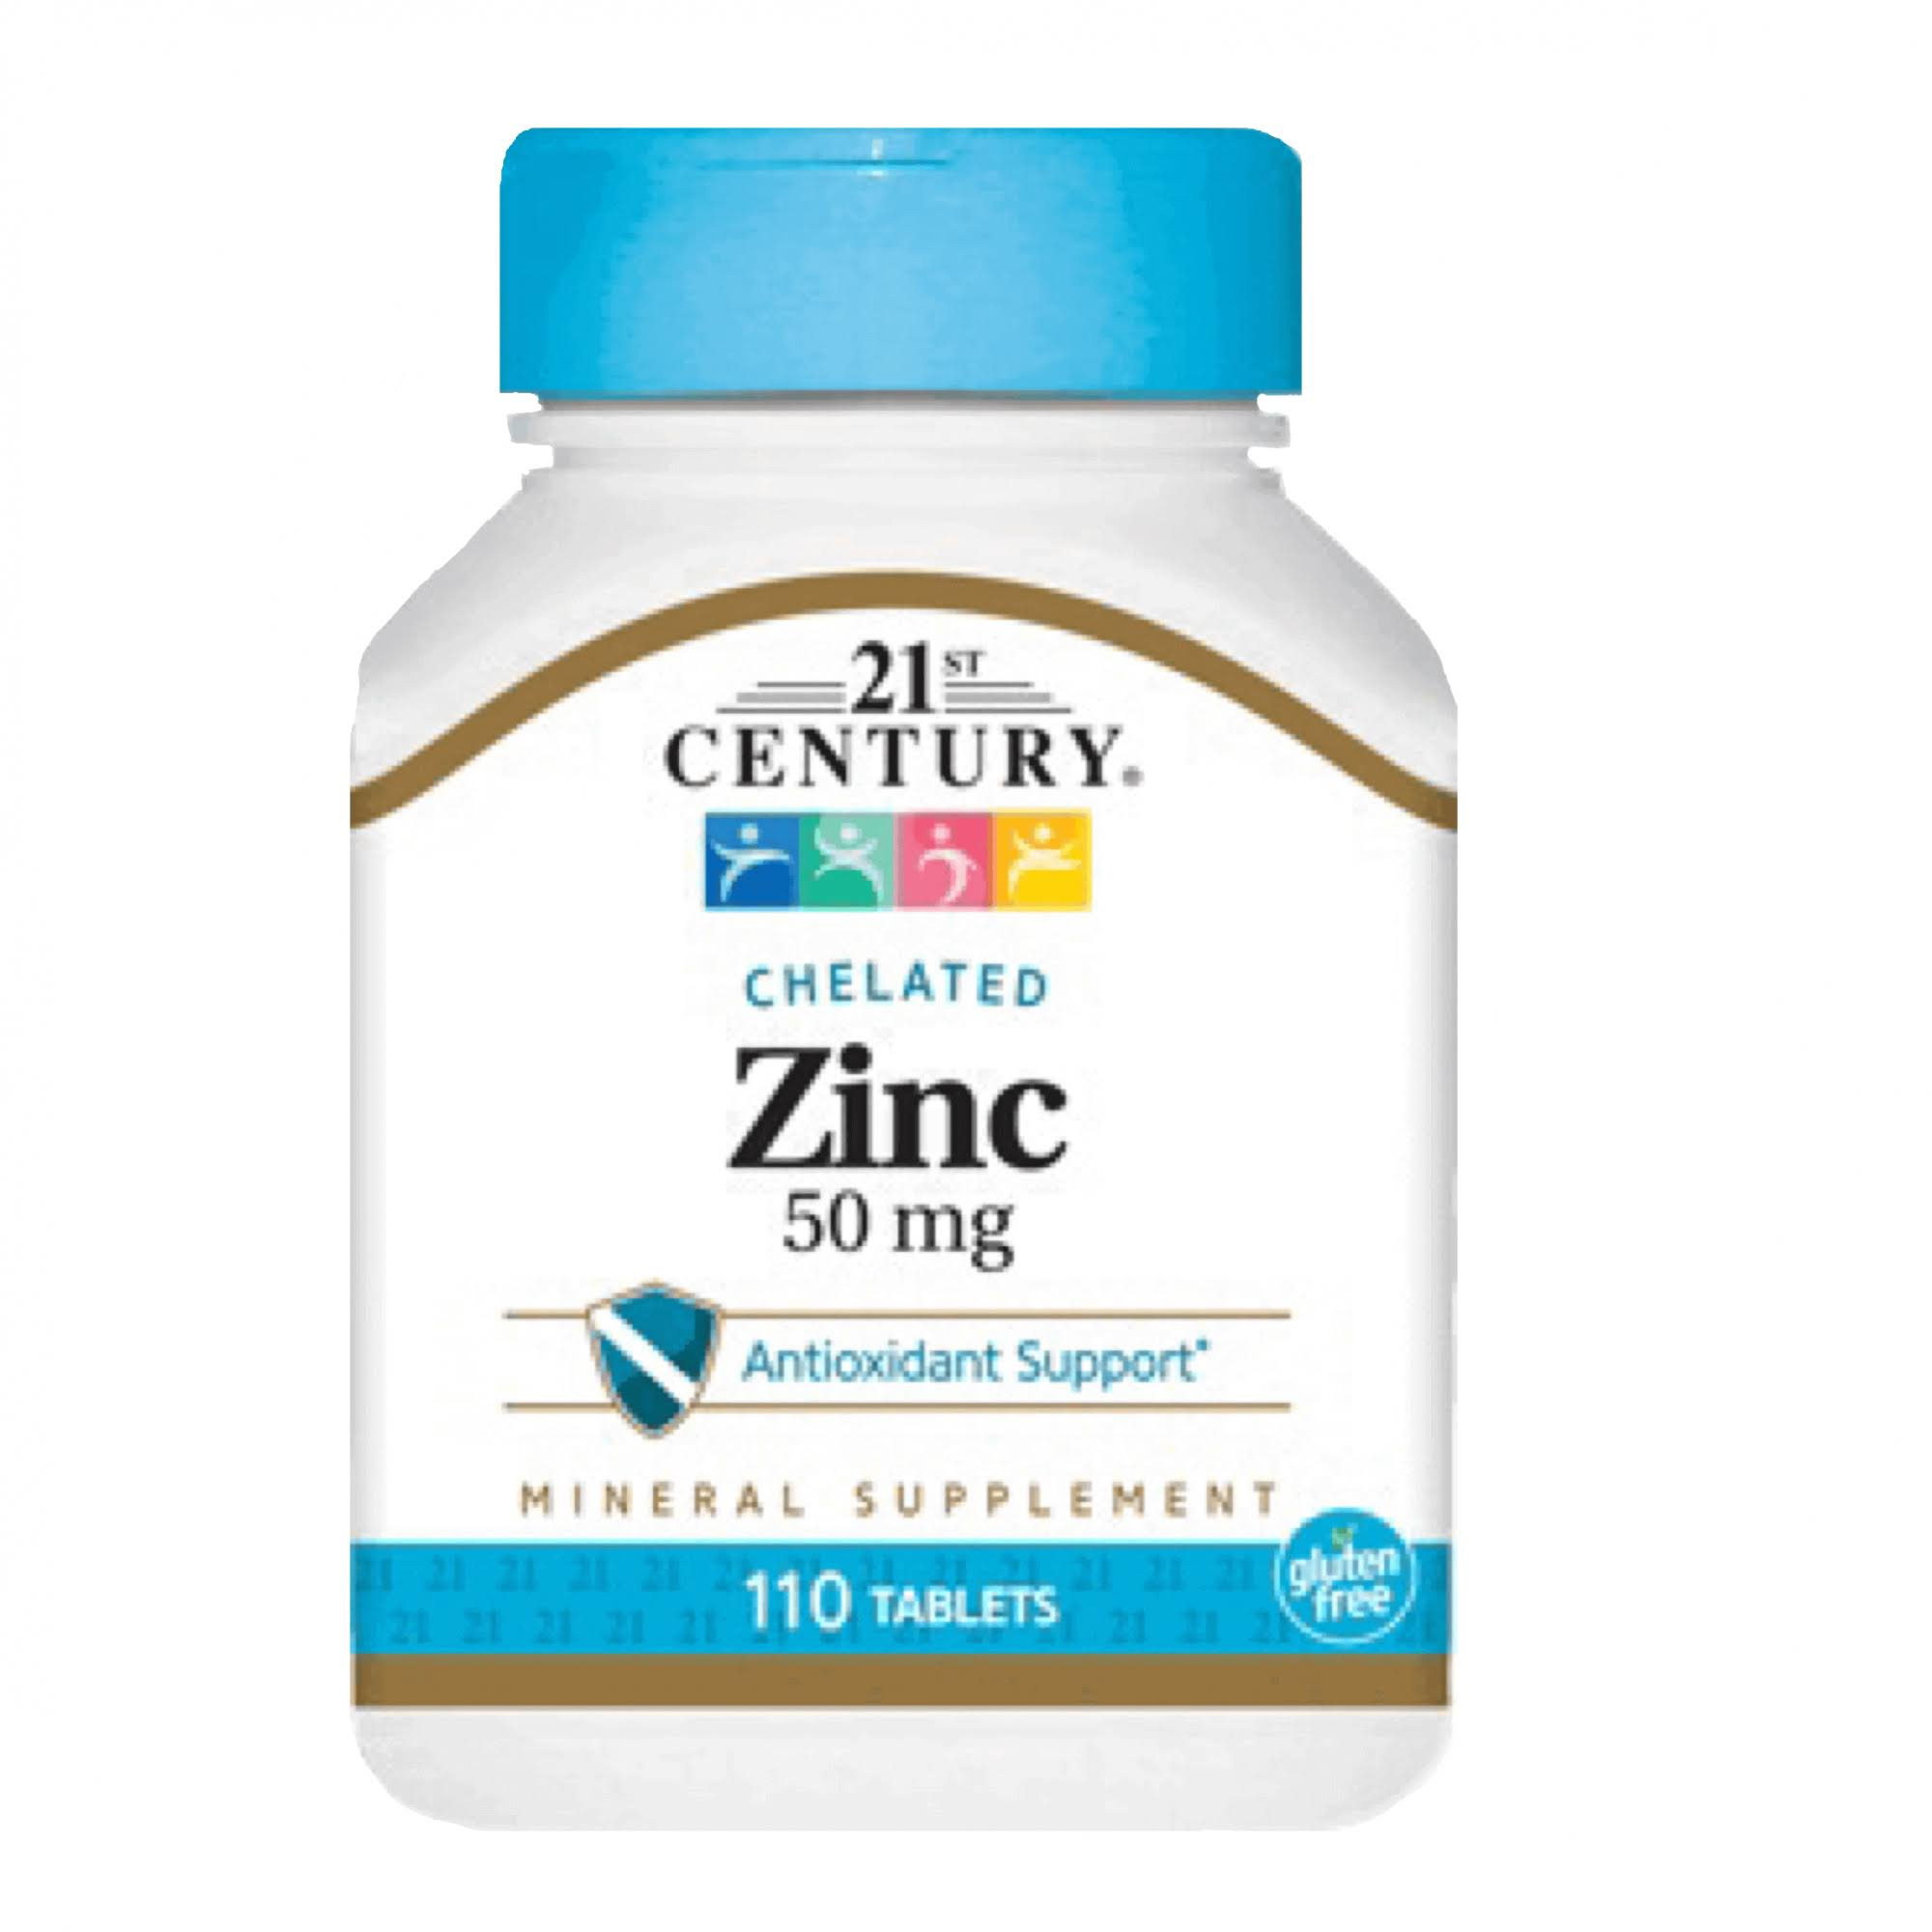 21st Century Chelated Zinc Supplement - 50mg, 110tabs